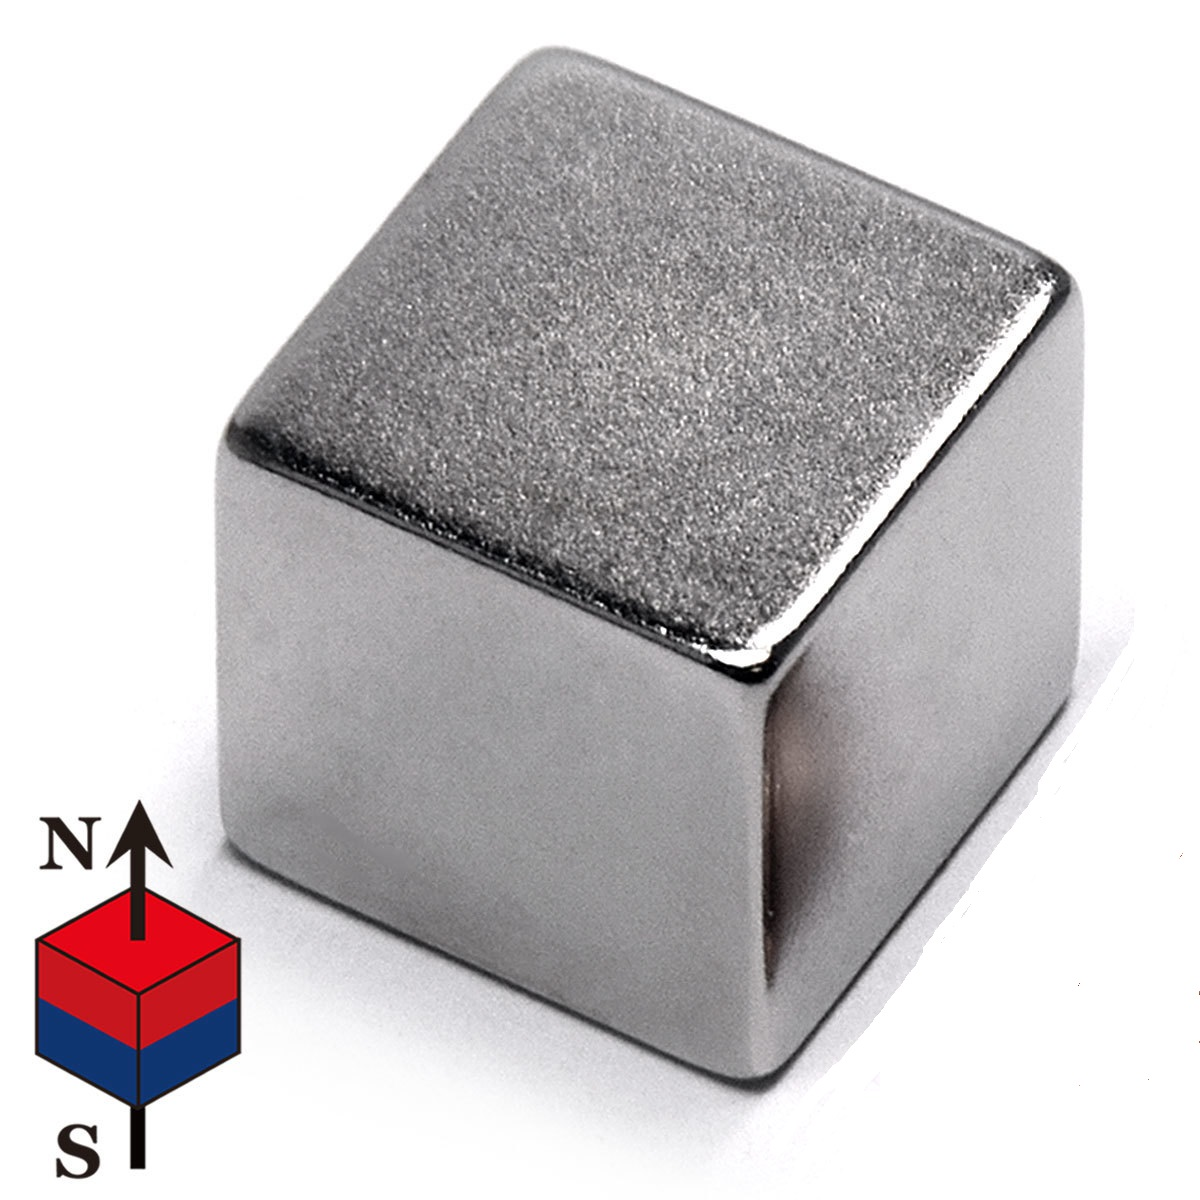 Neodymium Cube magnets, Magnetic Cubes Neodymium Rare Earth Cube magnets for Sale Magnet Super strong